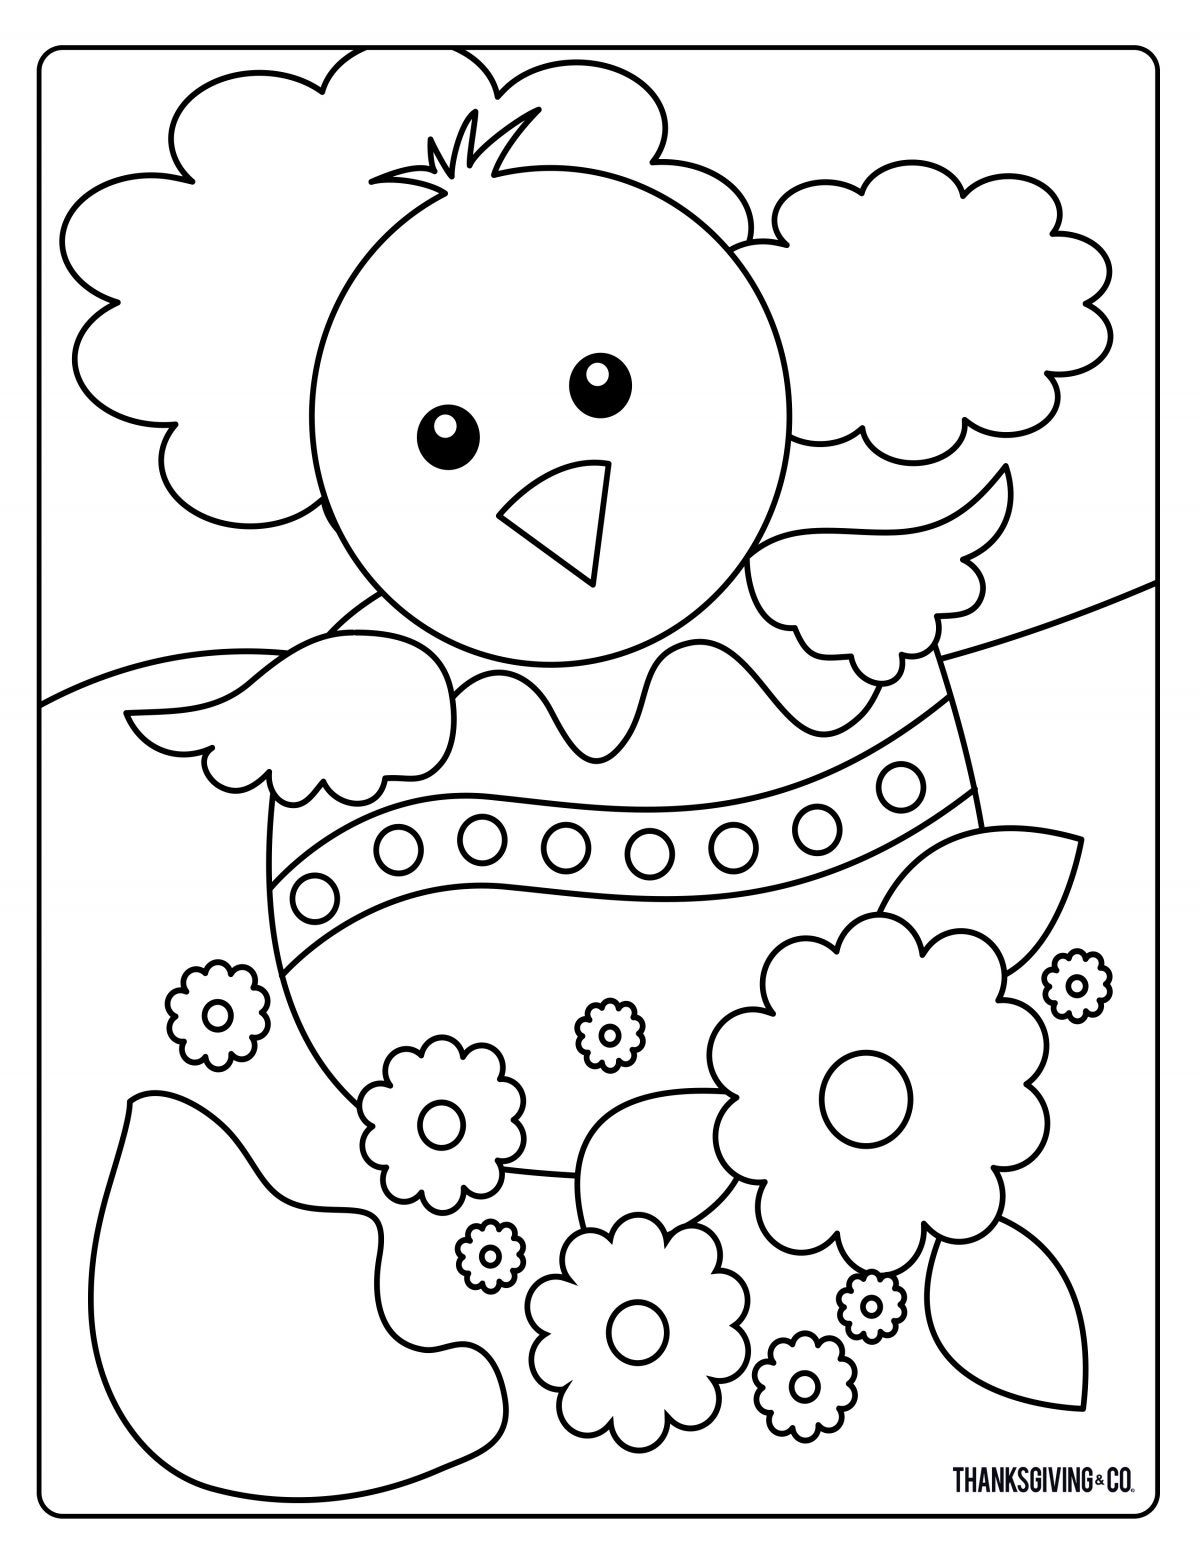 8 Free Printable Easter Coloring Pages Your Kids Will Love Easter Coloring Book Easter Coloring Pages Printable Unicorn Coloring Pages